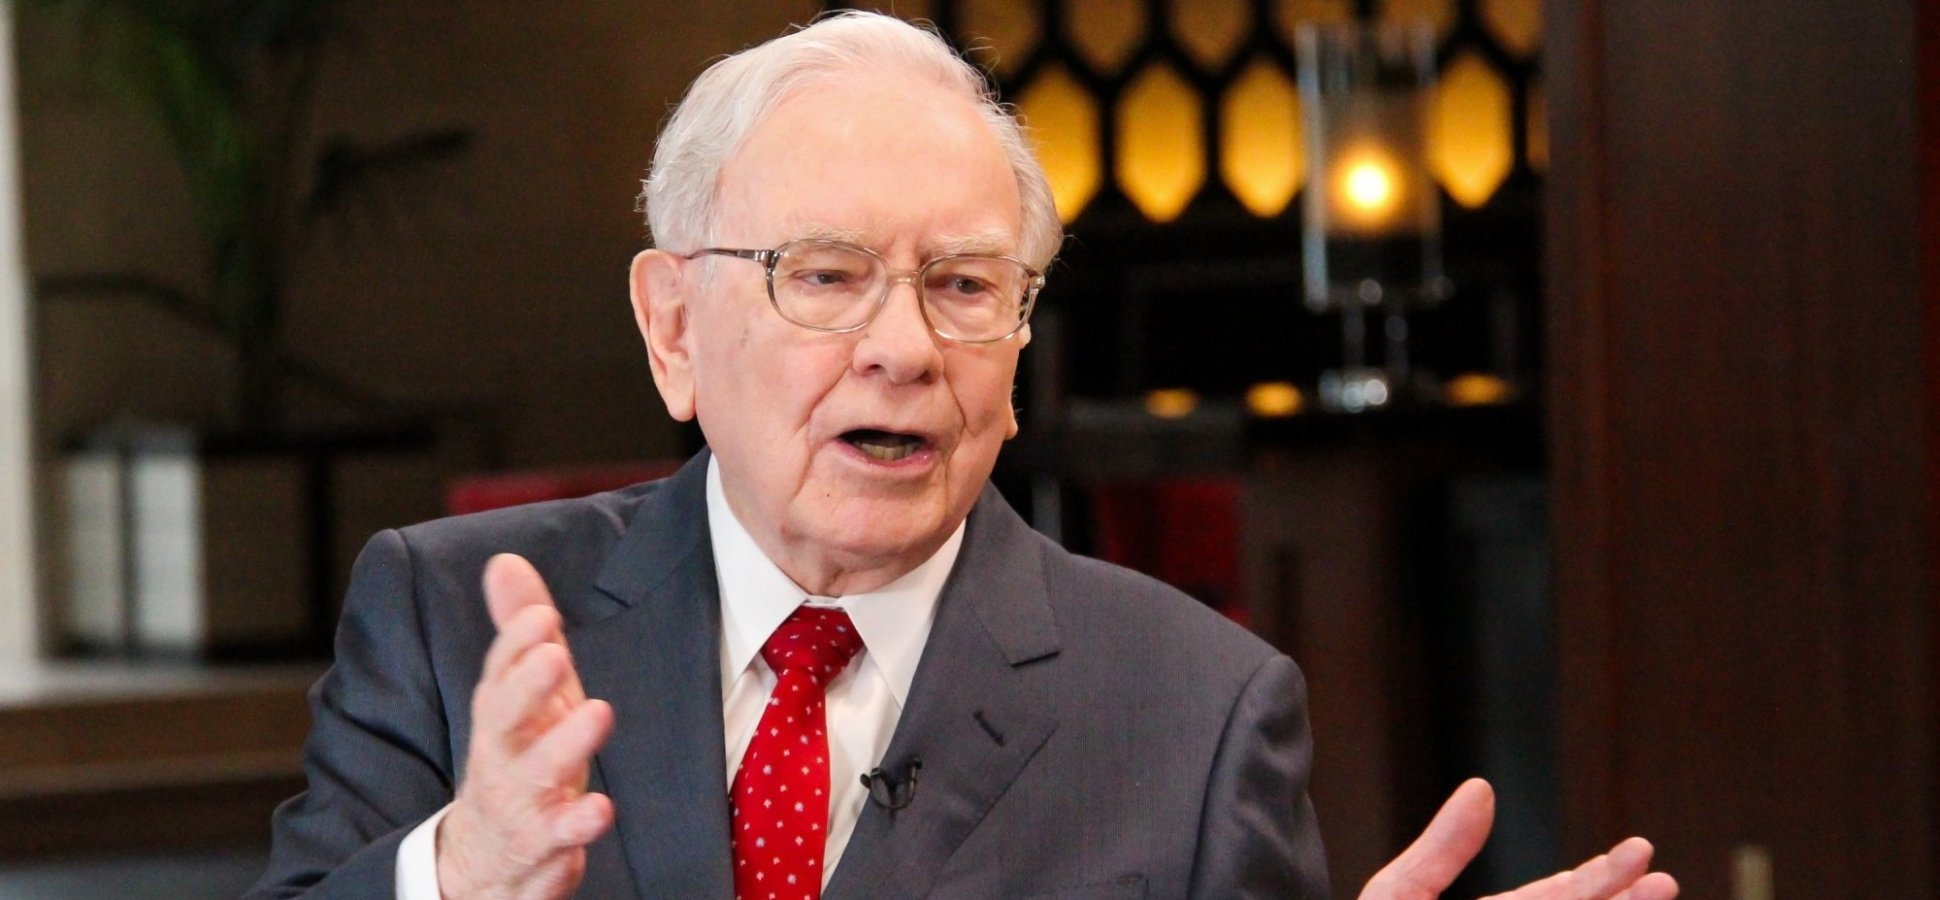 Warren Buffet Says This Career Advice Is All Wrong. It's Like 'Saving Up Sex for Your Old Age. It Just Doesn't Make a Lot of Sense'